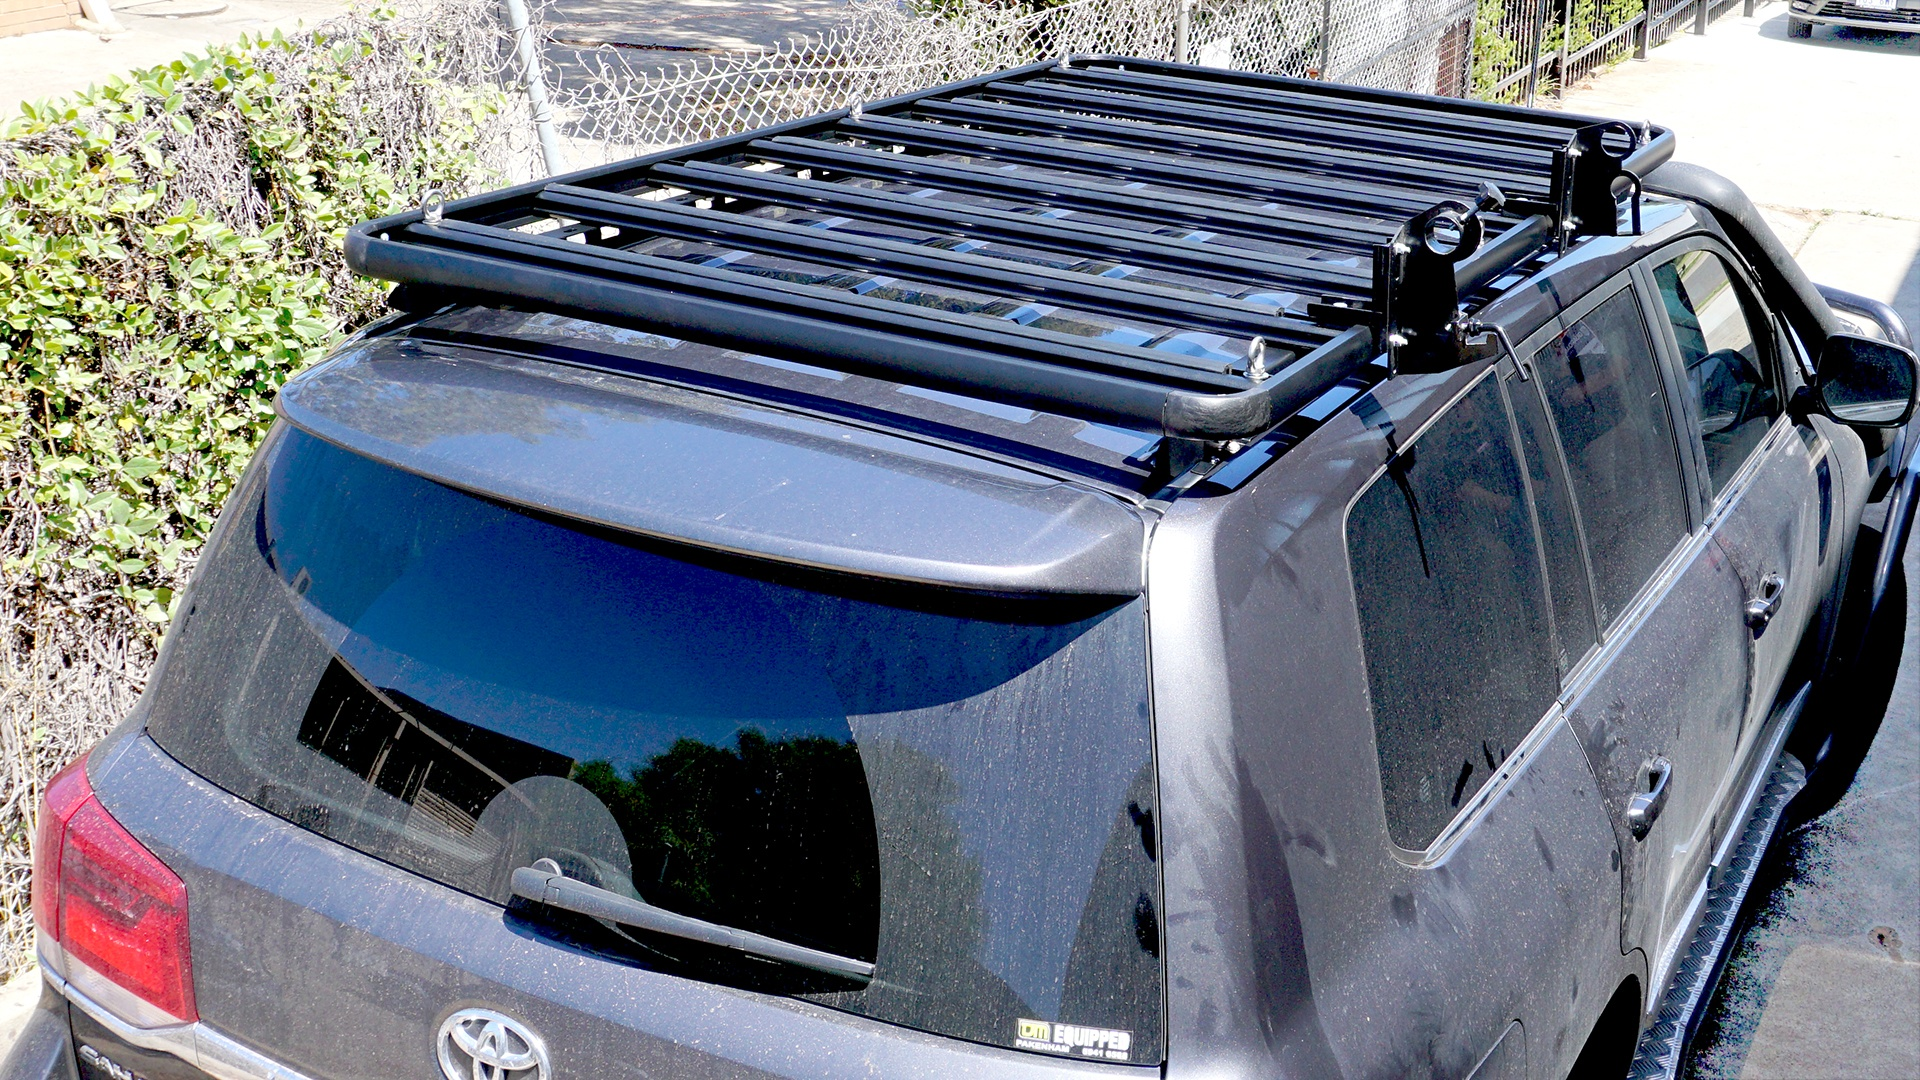 Top rear view of a Toyota LandCruiser 200 Series with a Wedgetail roof rack installed and a hi-lift jack and shovel holder installed as well as five tie-down eyelets.